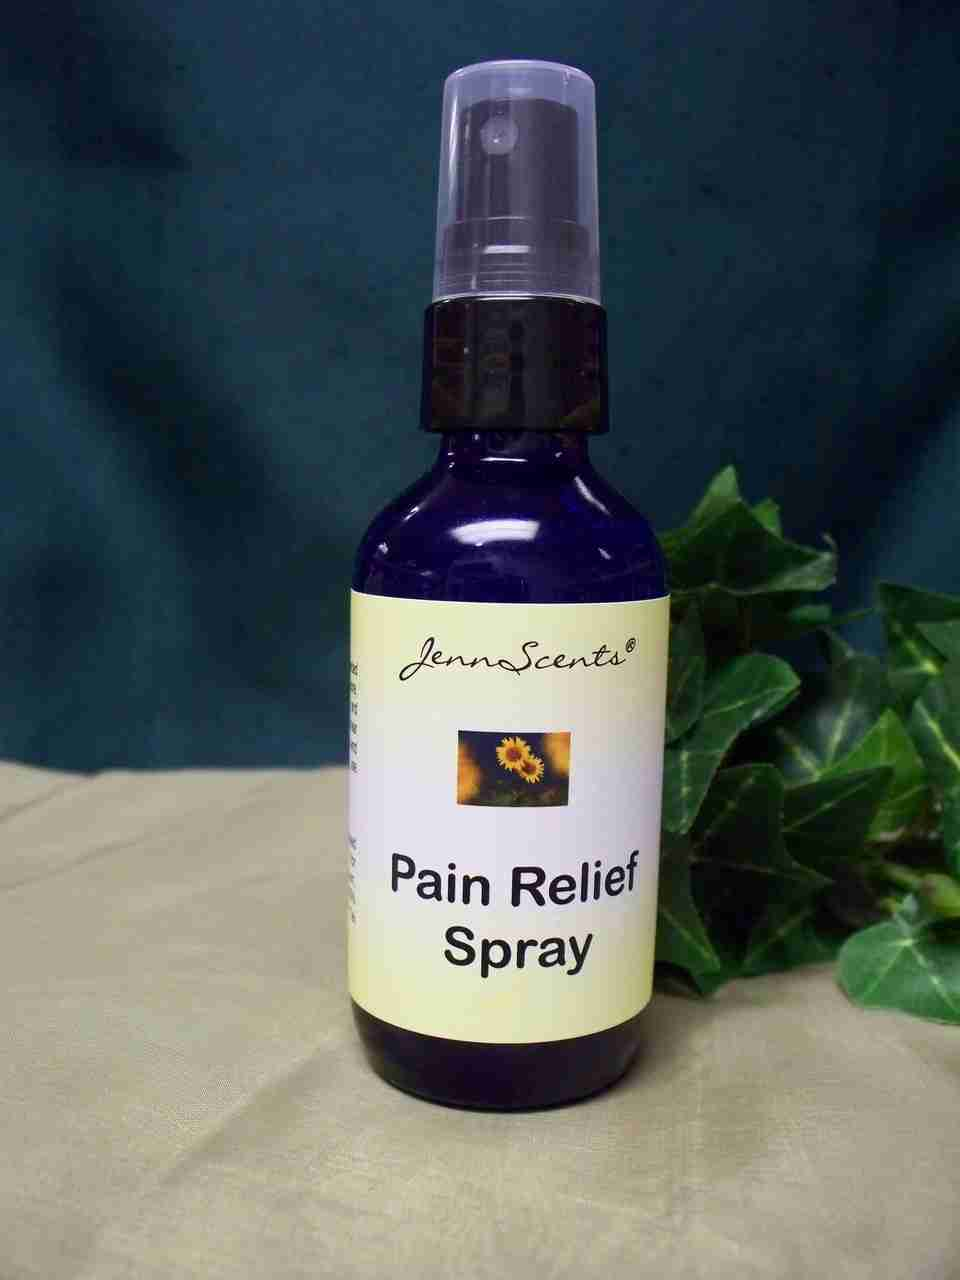 Pain Relief Spray